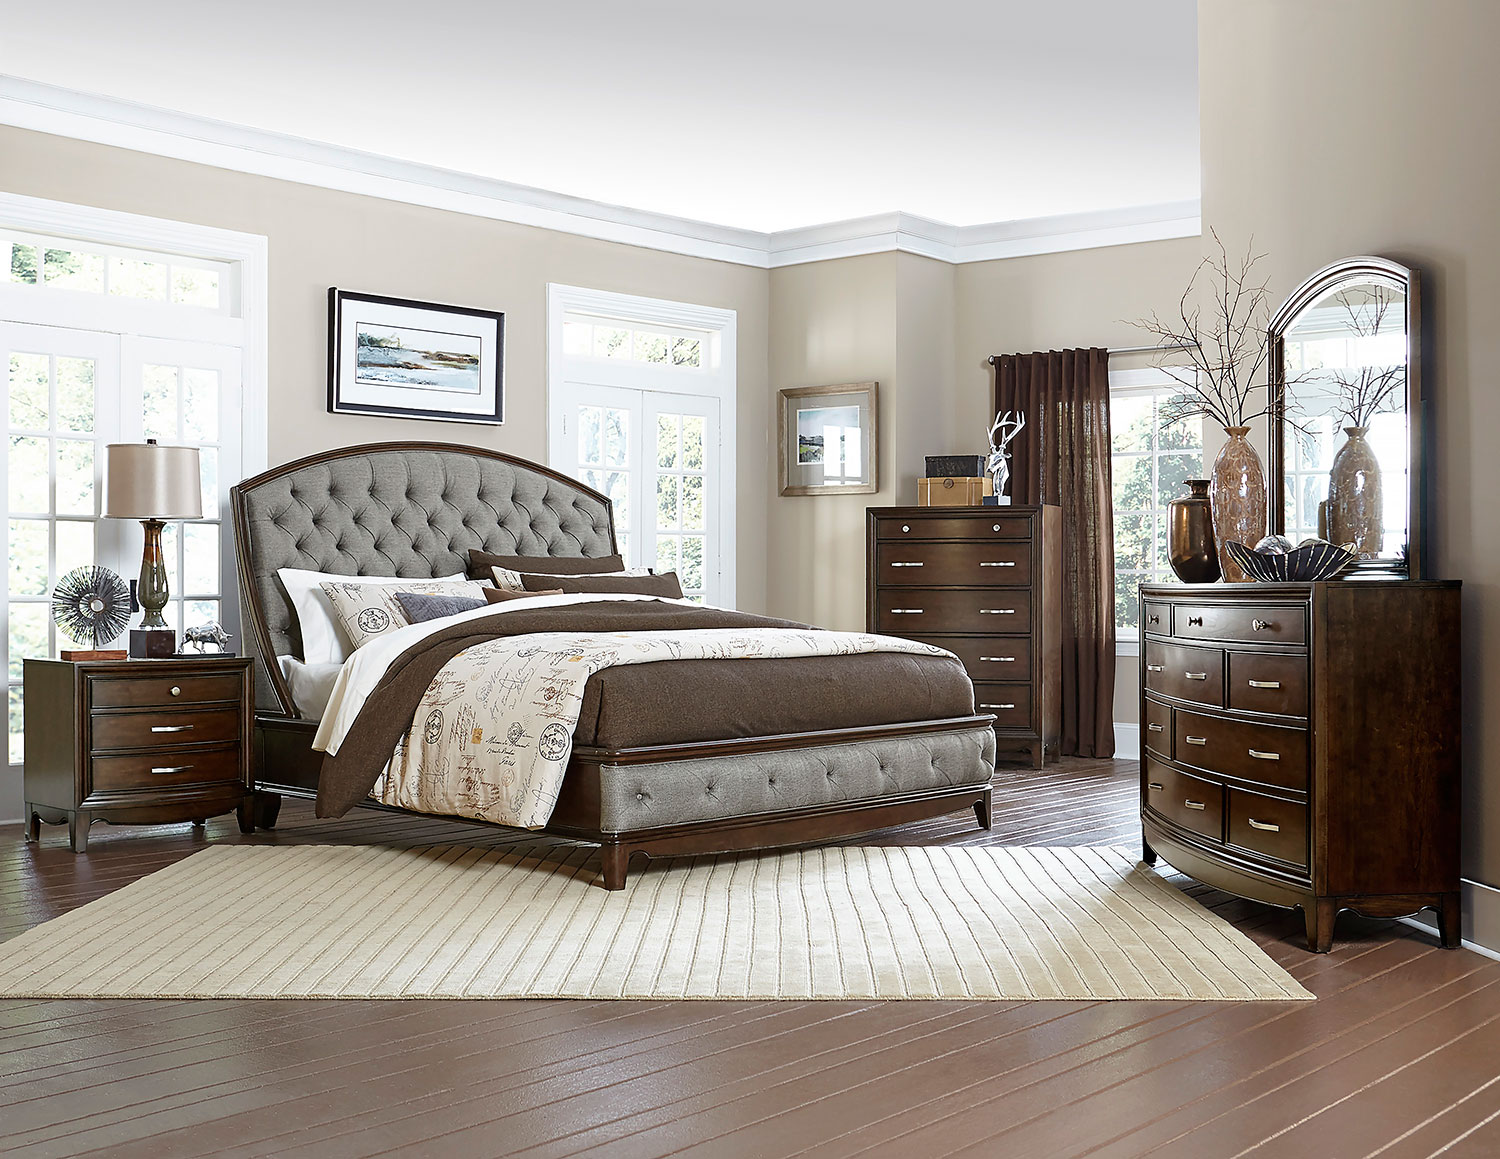 Homelegance Yorklyn Button Tufted Upholstered Sleigh Bedroom Set - Cherry